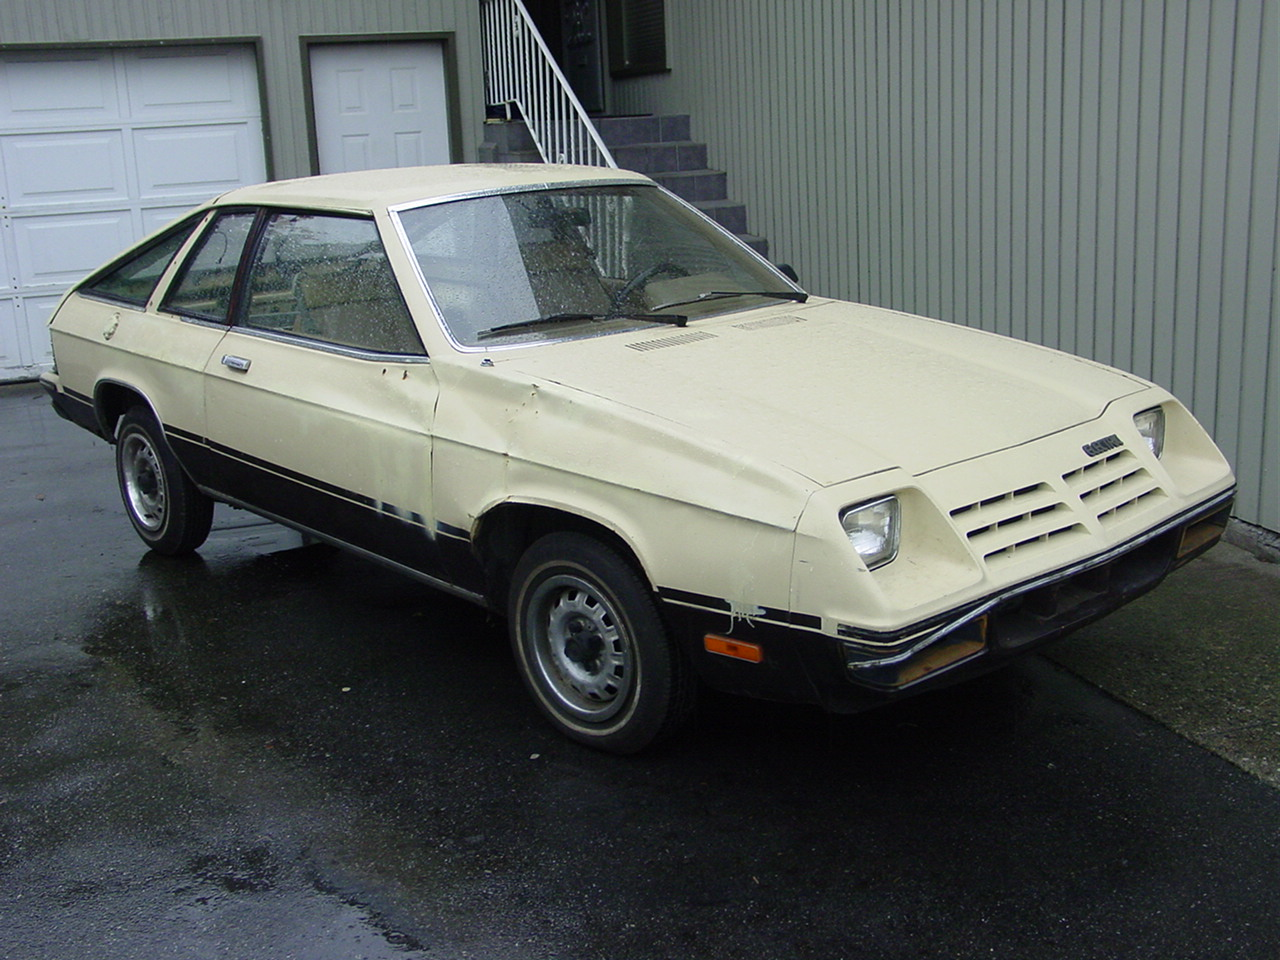 My Electric drive 1979 Dodge Omni drives great. It is currently (excuse the